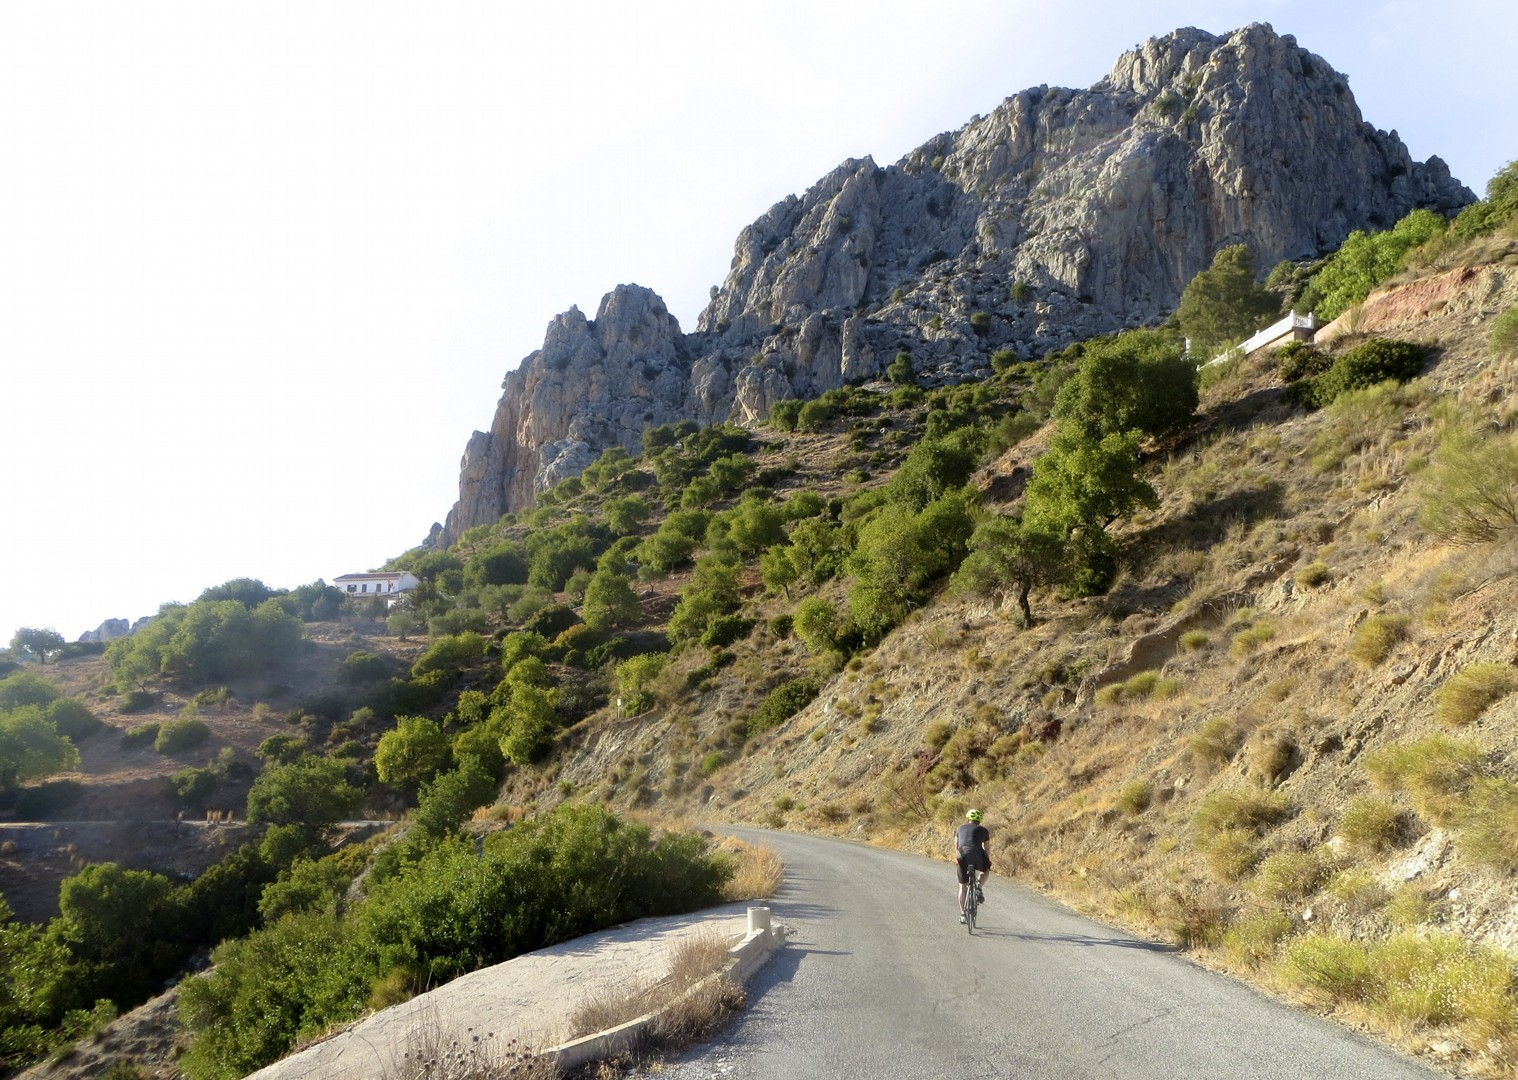 Riojanrolling12.jpg - Northern Spain - La Rioja - Ruta del Vino - Guided Road Cycling Holiday - Road Cycling